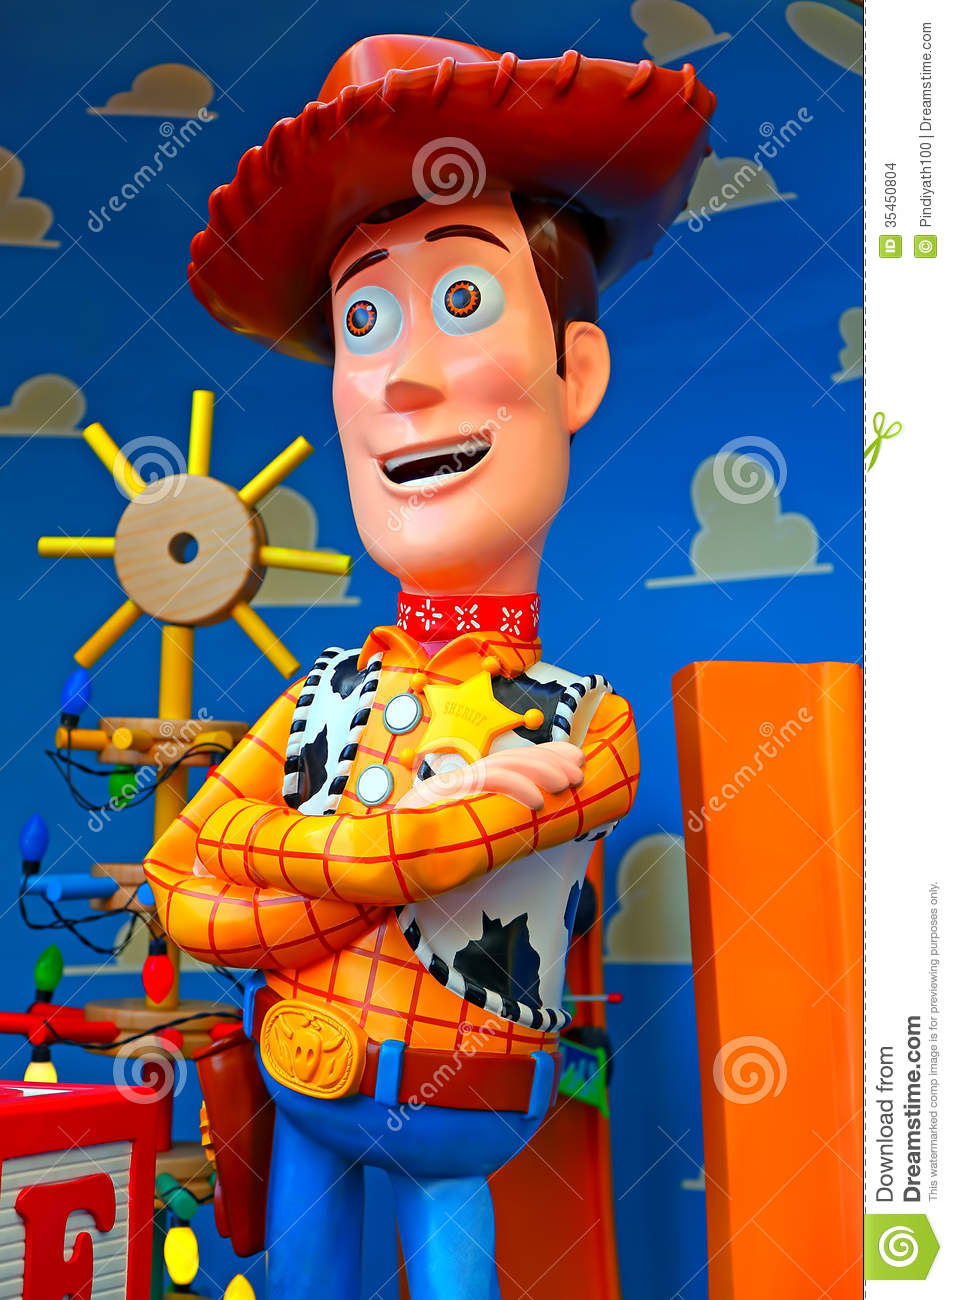 Disney Pixar Toy Story Character Woody Editorial Stock Image - Image ...